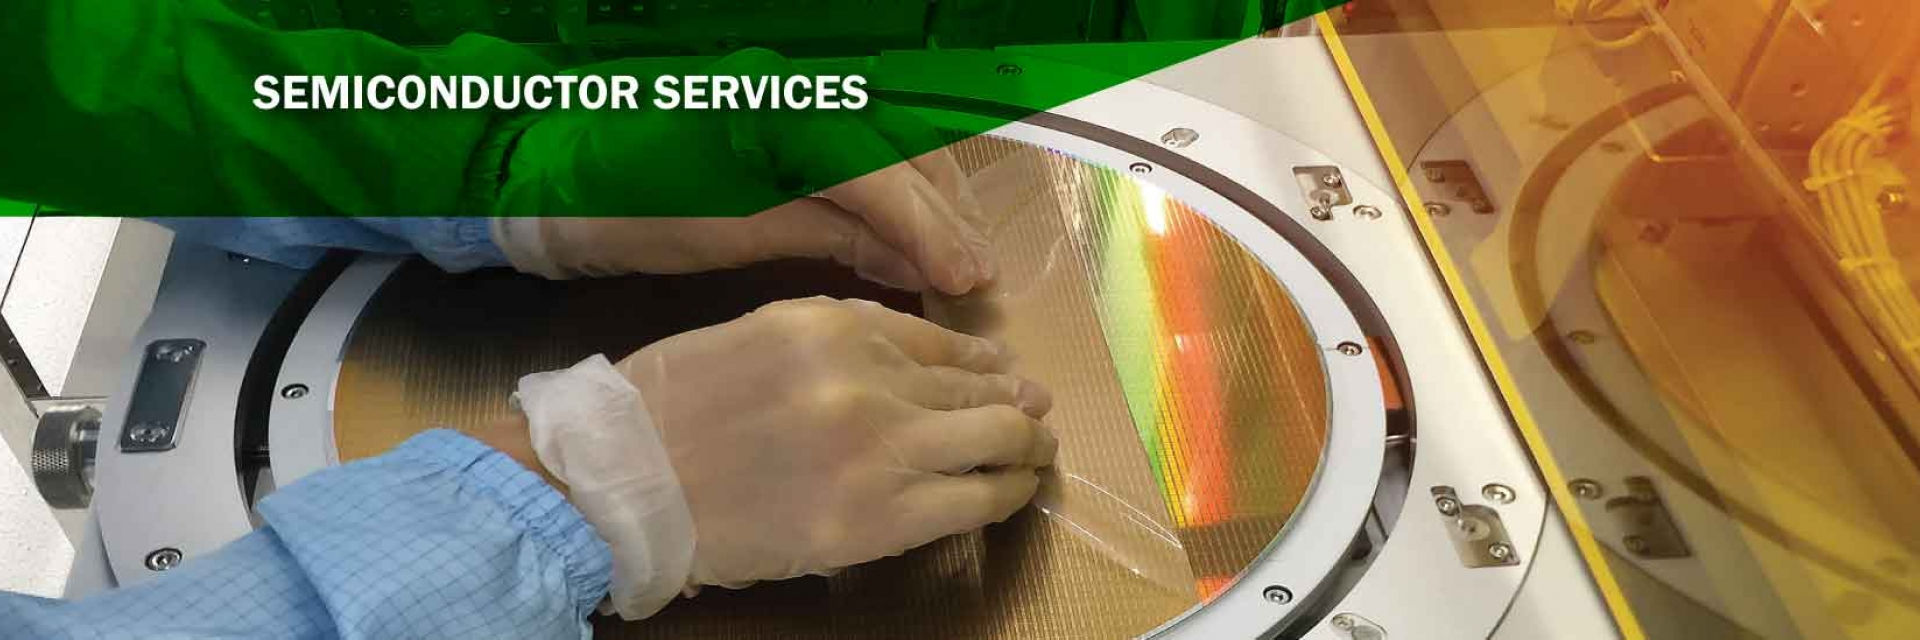 semiconductor-services-banner